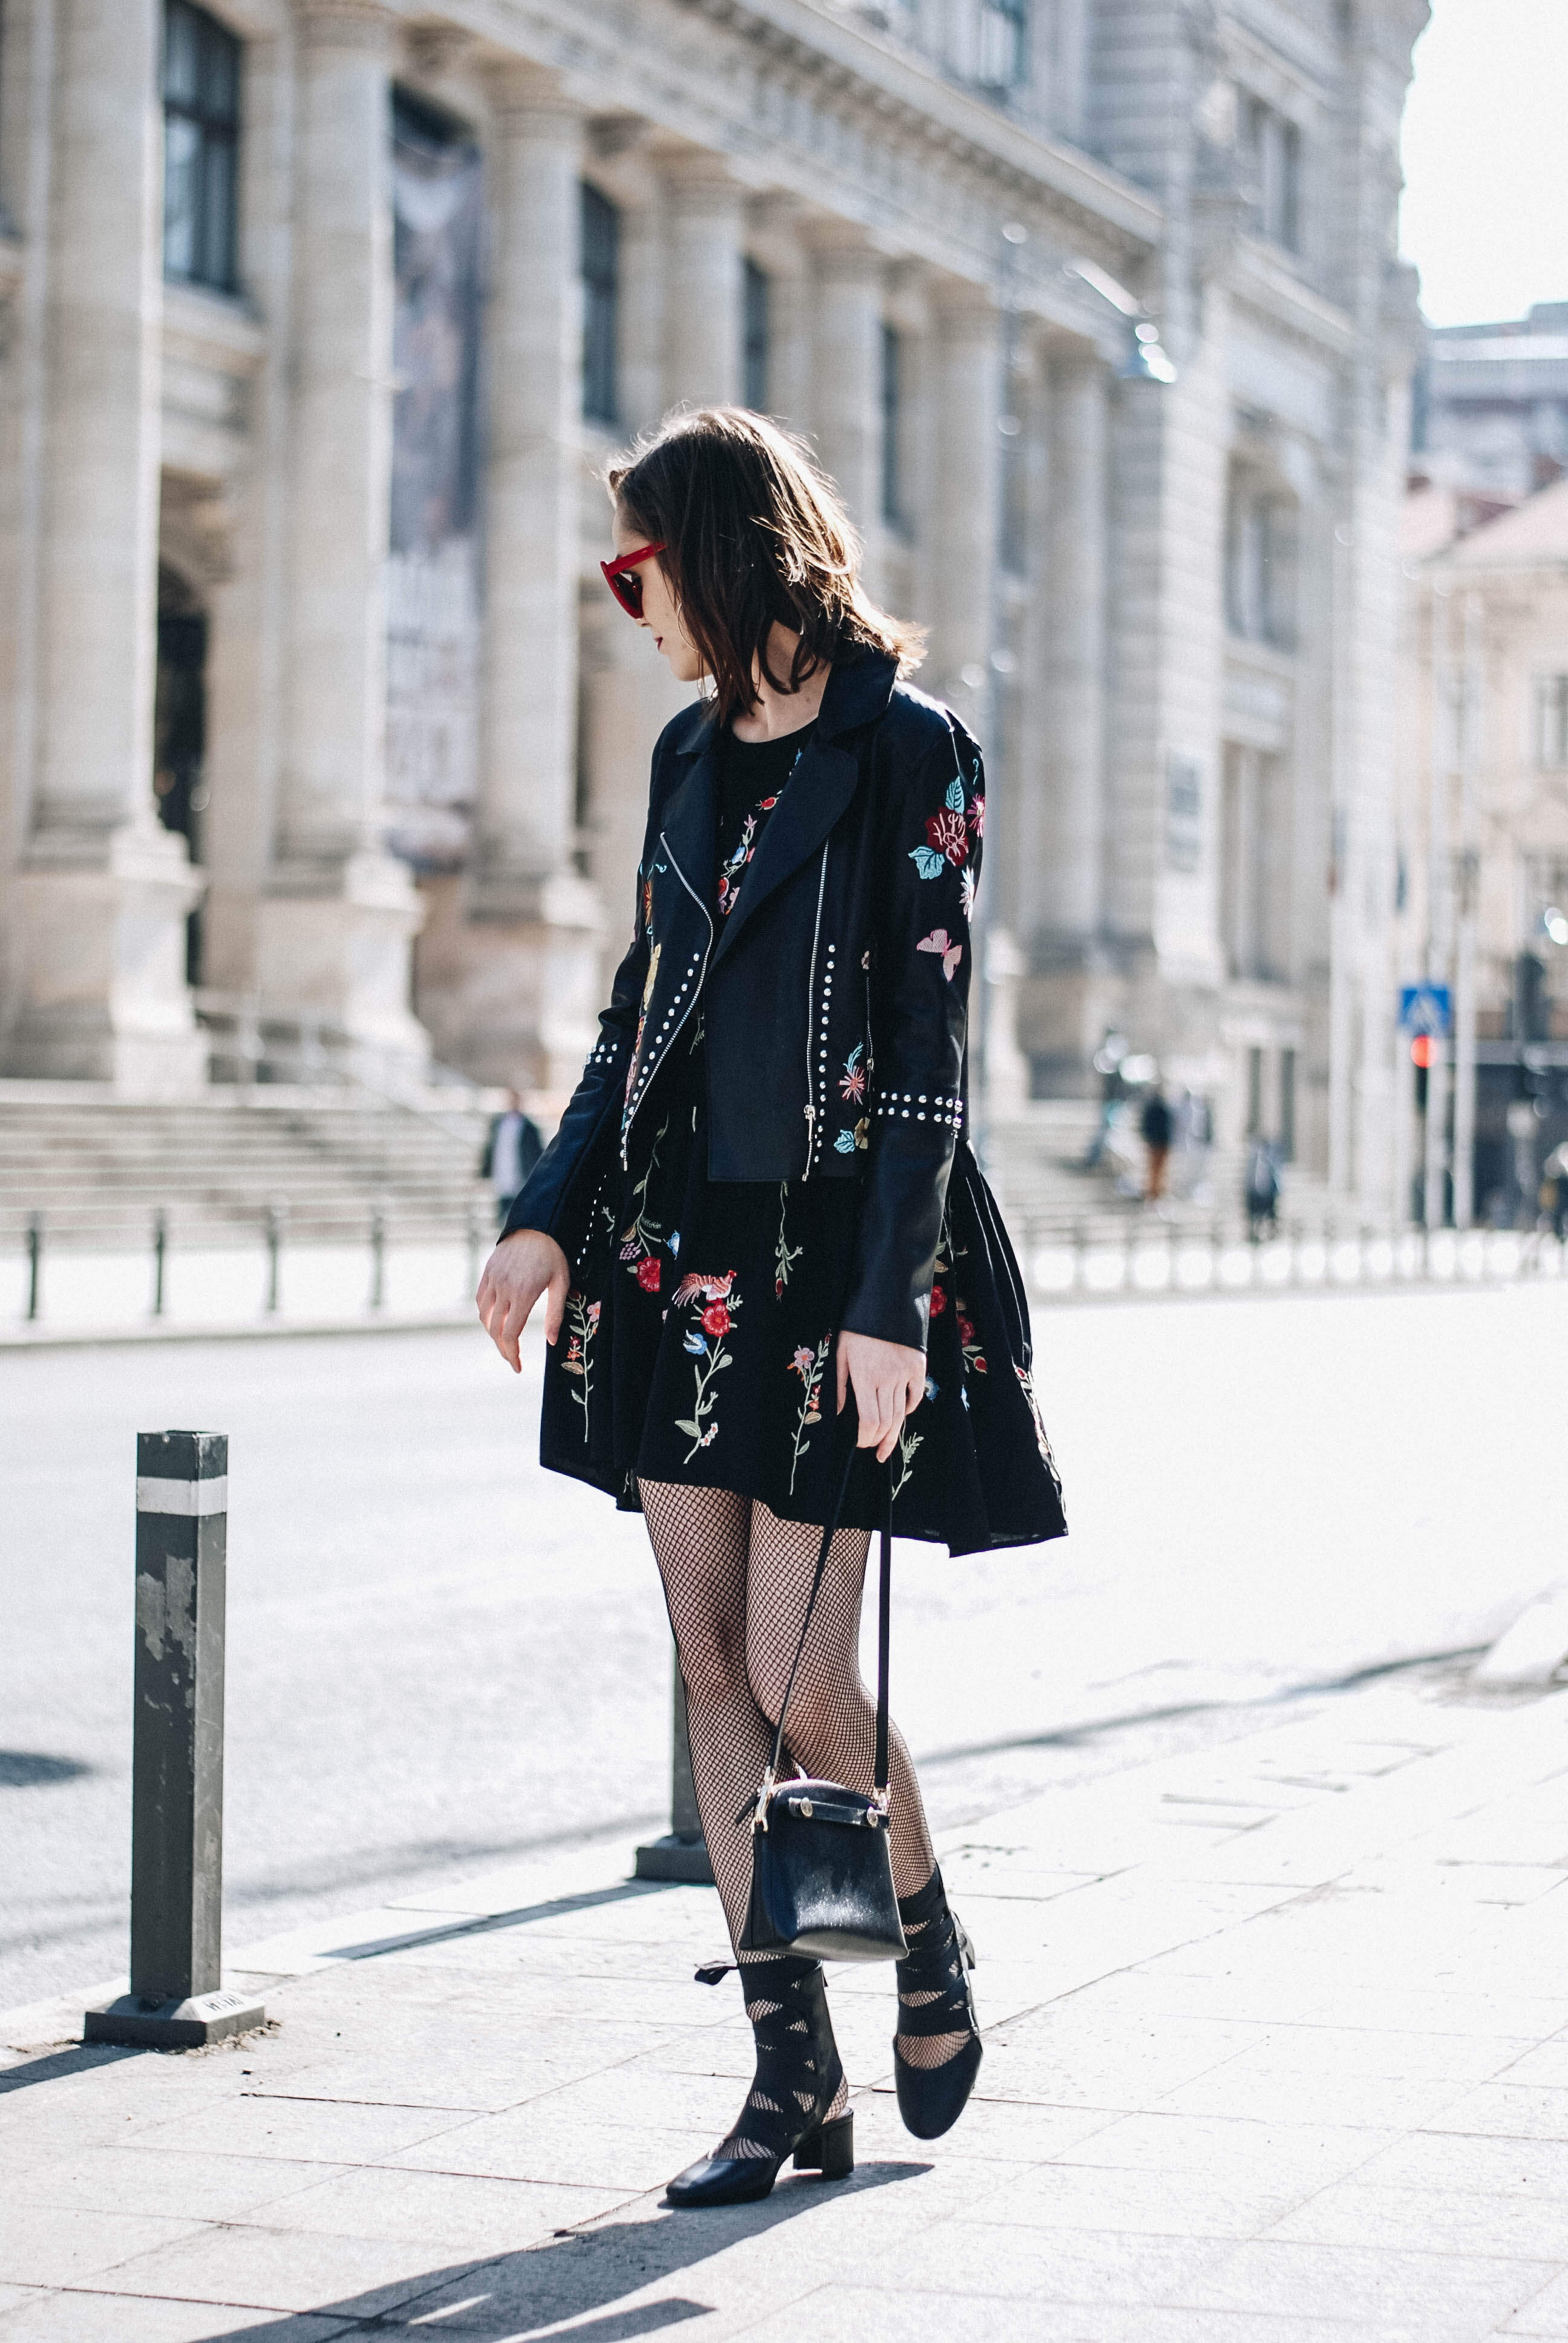 How To Wear A Floral Embroidered Dress With Fishnet Tights